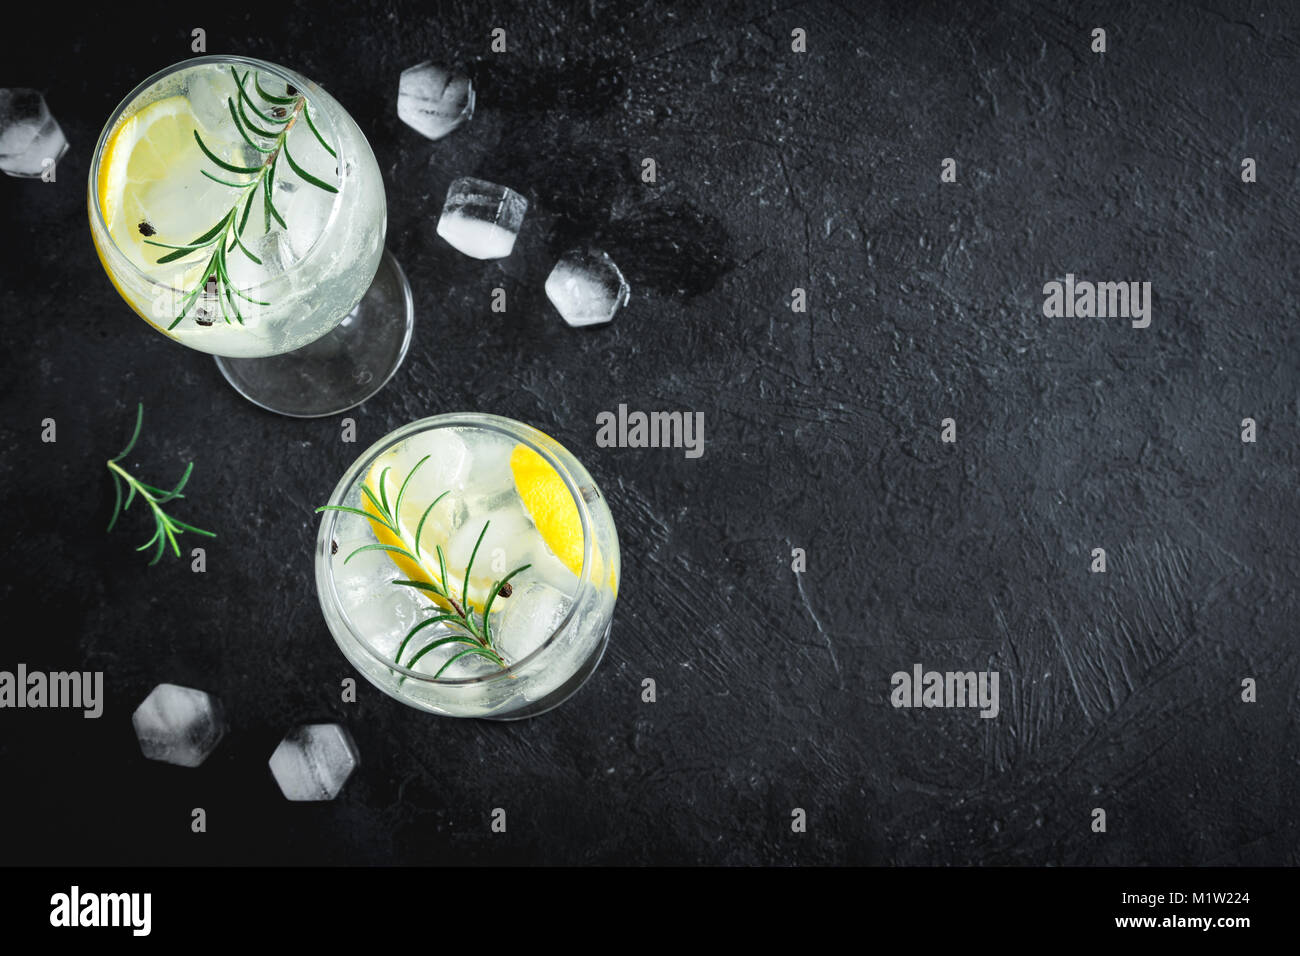 Alcohol drink (gin tonic cocktail) with lemon, rosemary and ice on rustic black stone table, copy space, top view. Stock Photo